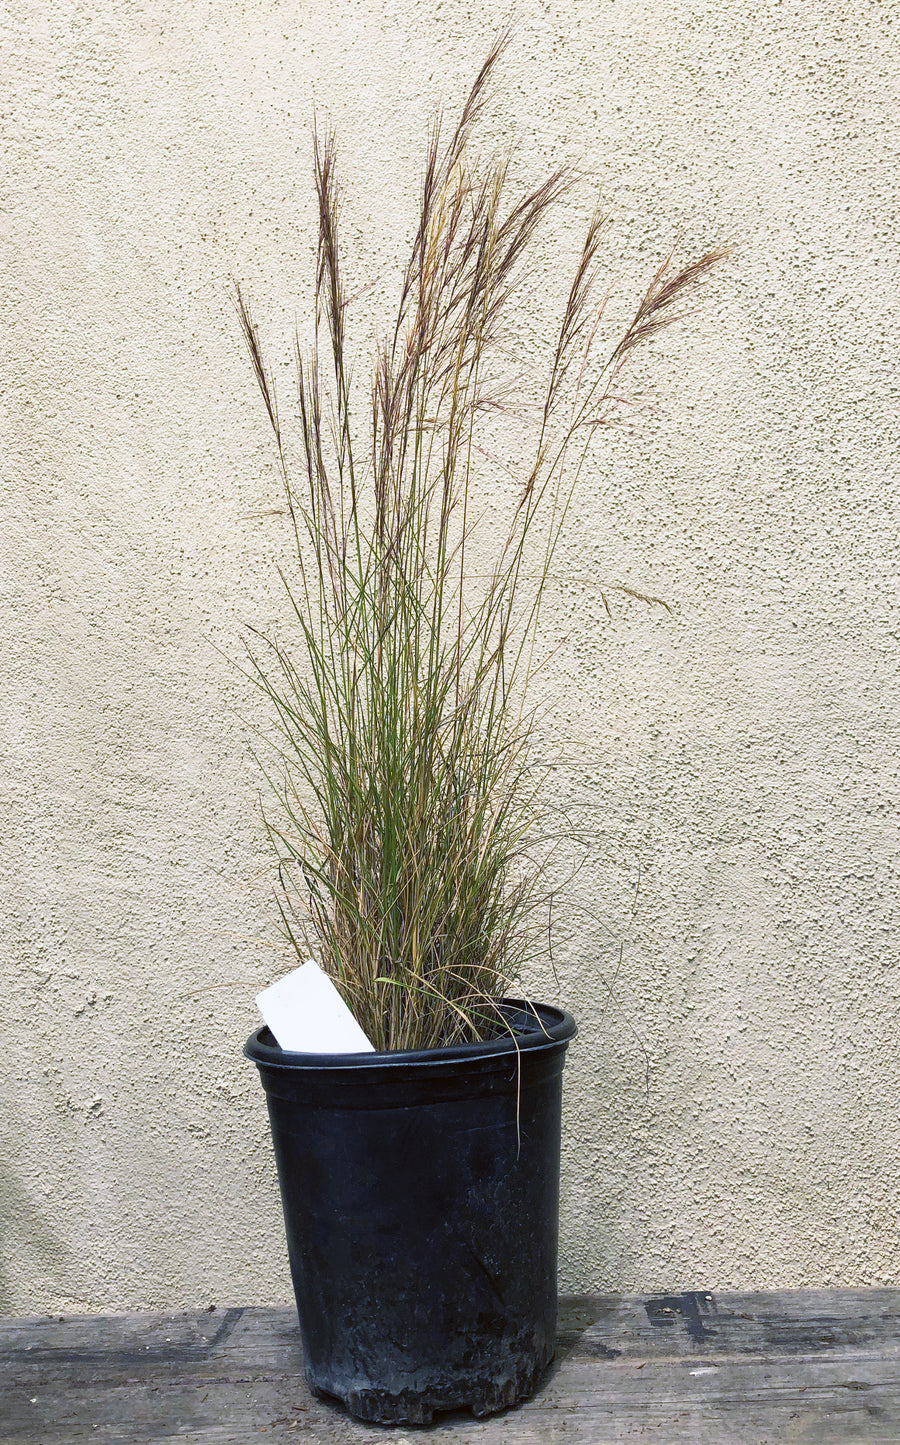 Aristida purpurea (Purple Three Awn)